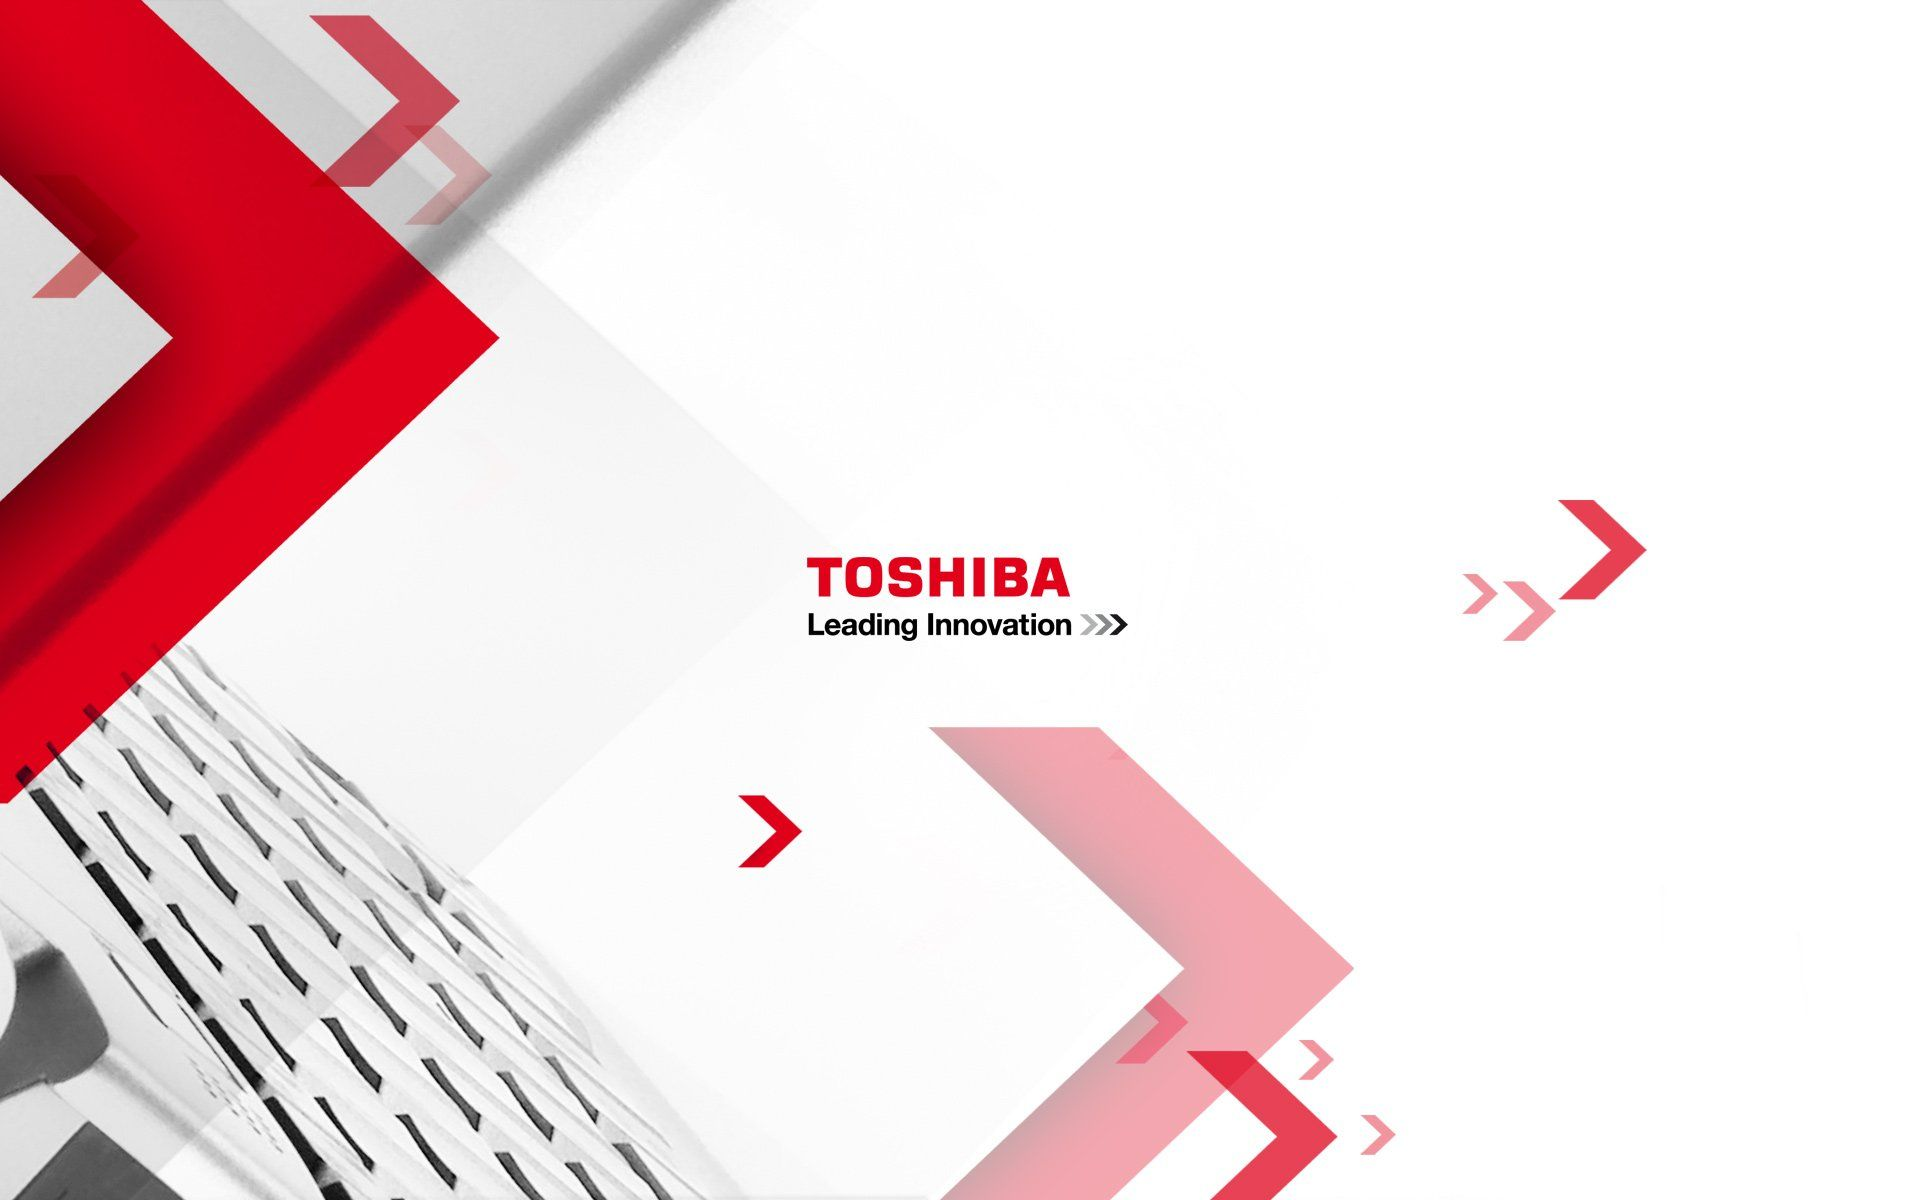 20 Toshiba Wallpaper Toshiba Wallpapers Eufemia Cunningham